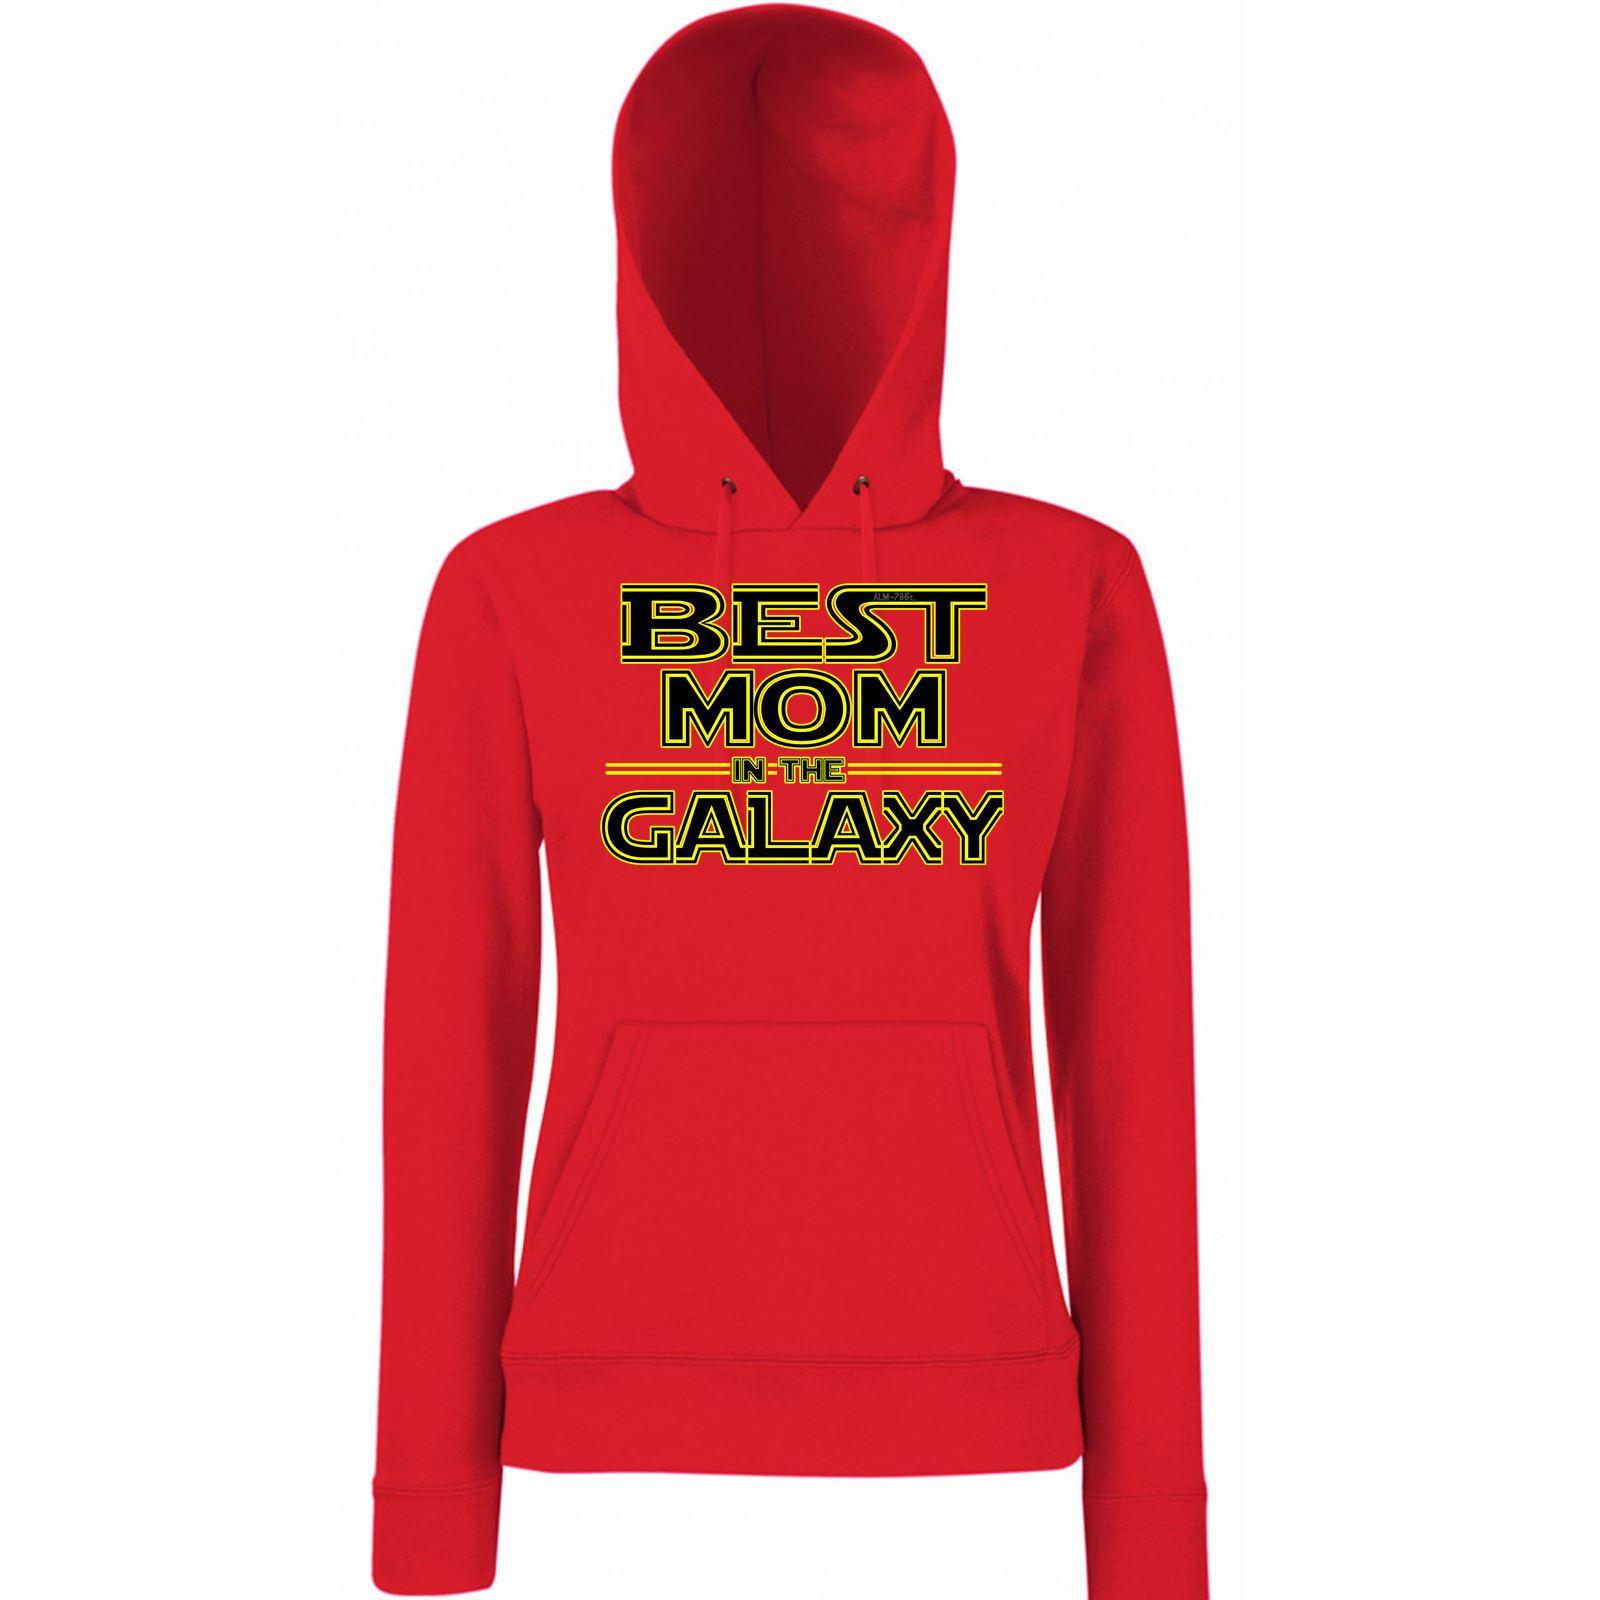 Hilarious Womens Hoodies-Best MOM in Galaxy Star Wars -Hooded ... 98a7c23e4